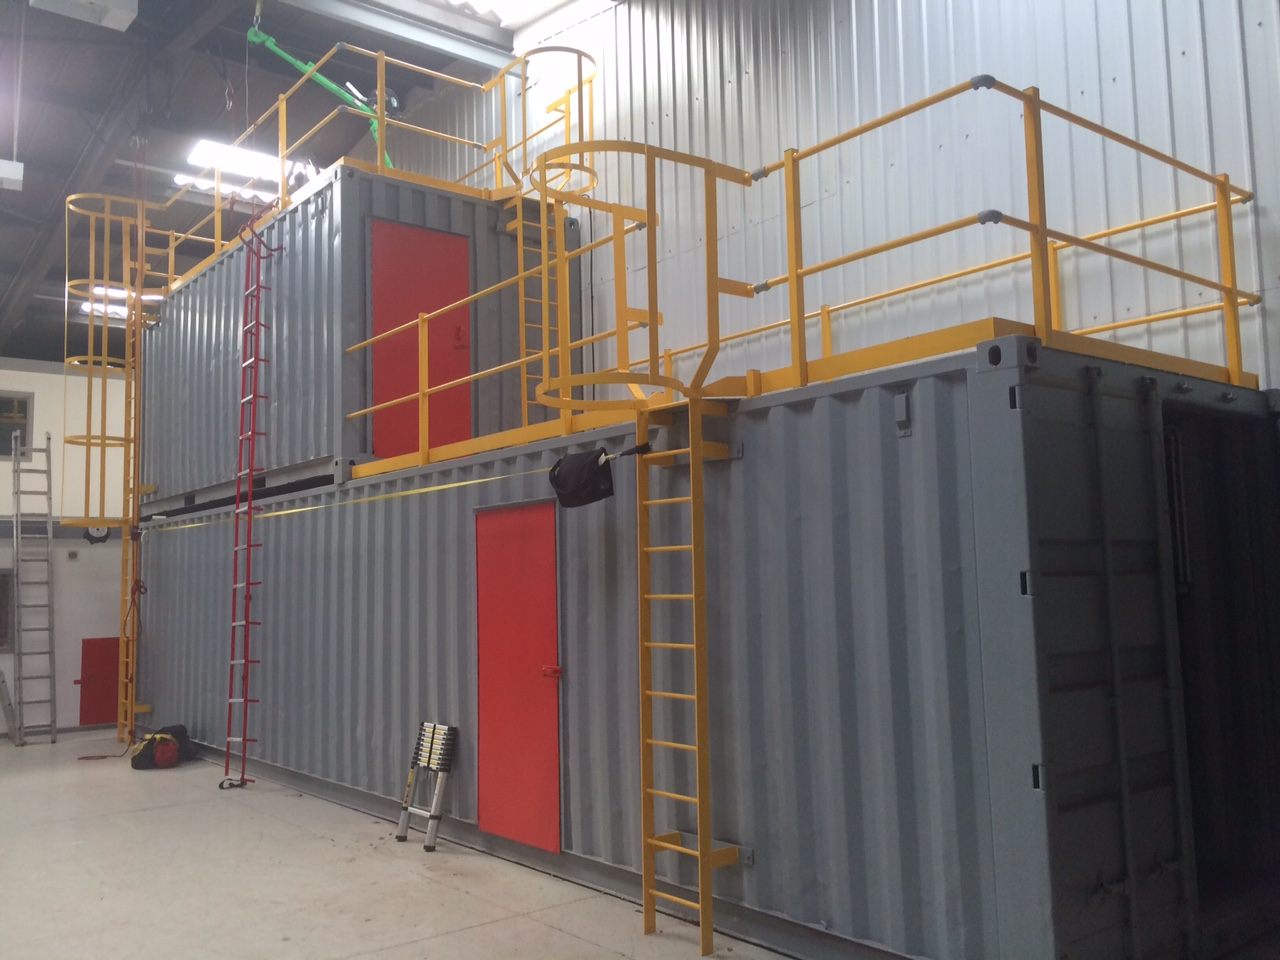 Fire Training Unit Shipping Container Conversion